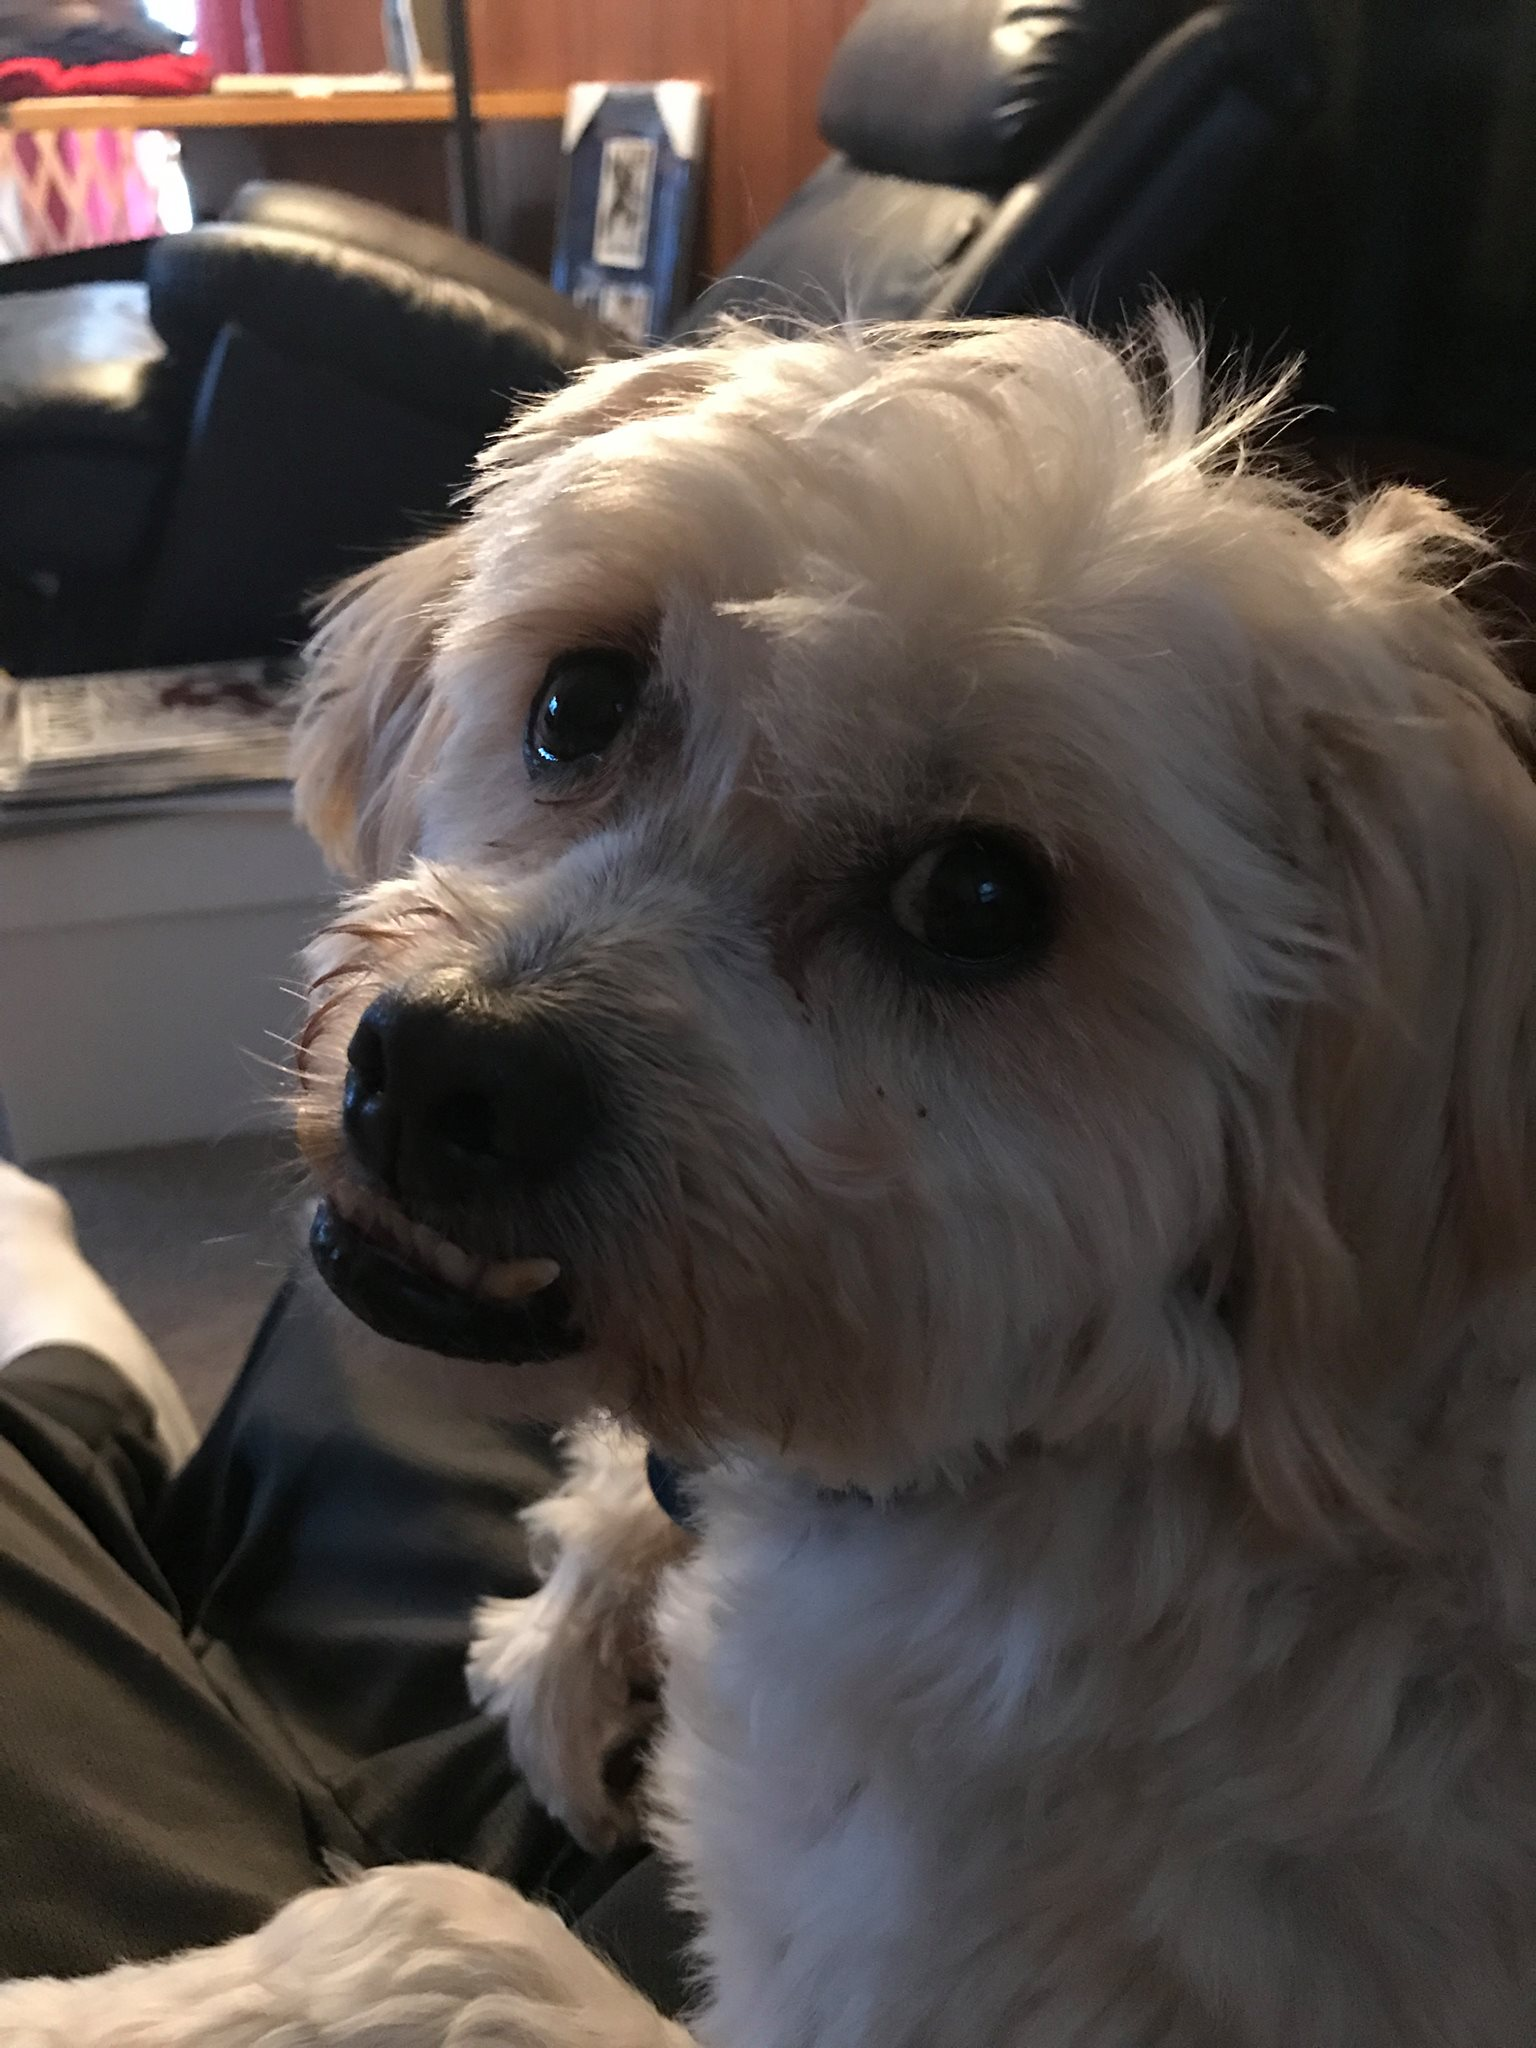 20. Kaiser - He will be 9 in April. He is a shih tzu poodle mix. Kaiser likes to eat flies and tries to steal food right out of my hand, one time he snagged the lettuce from my Wendy's hamburger I was eating. He's the best.